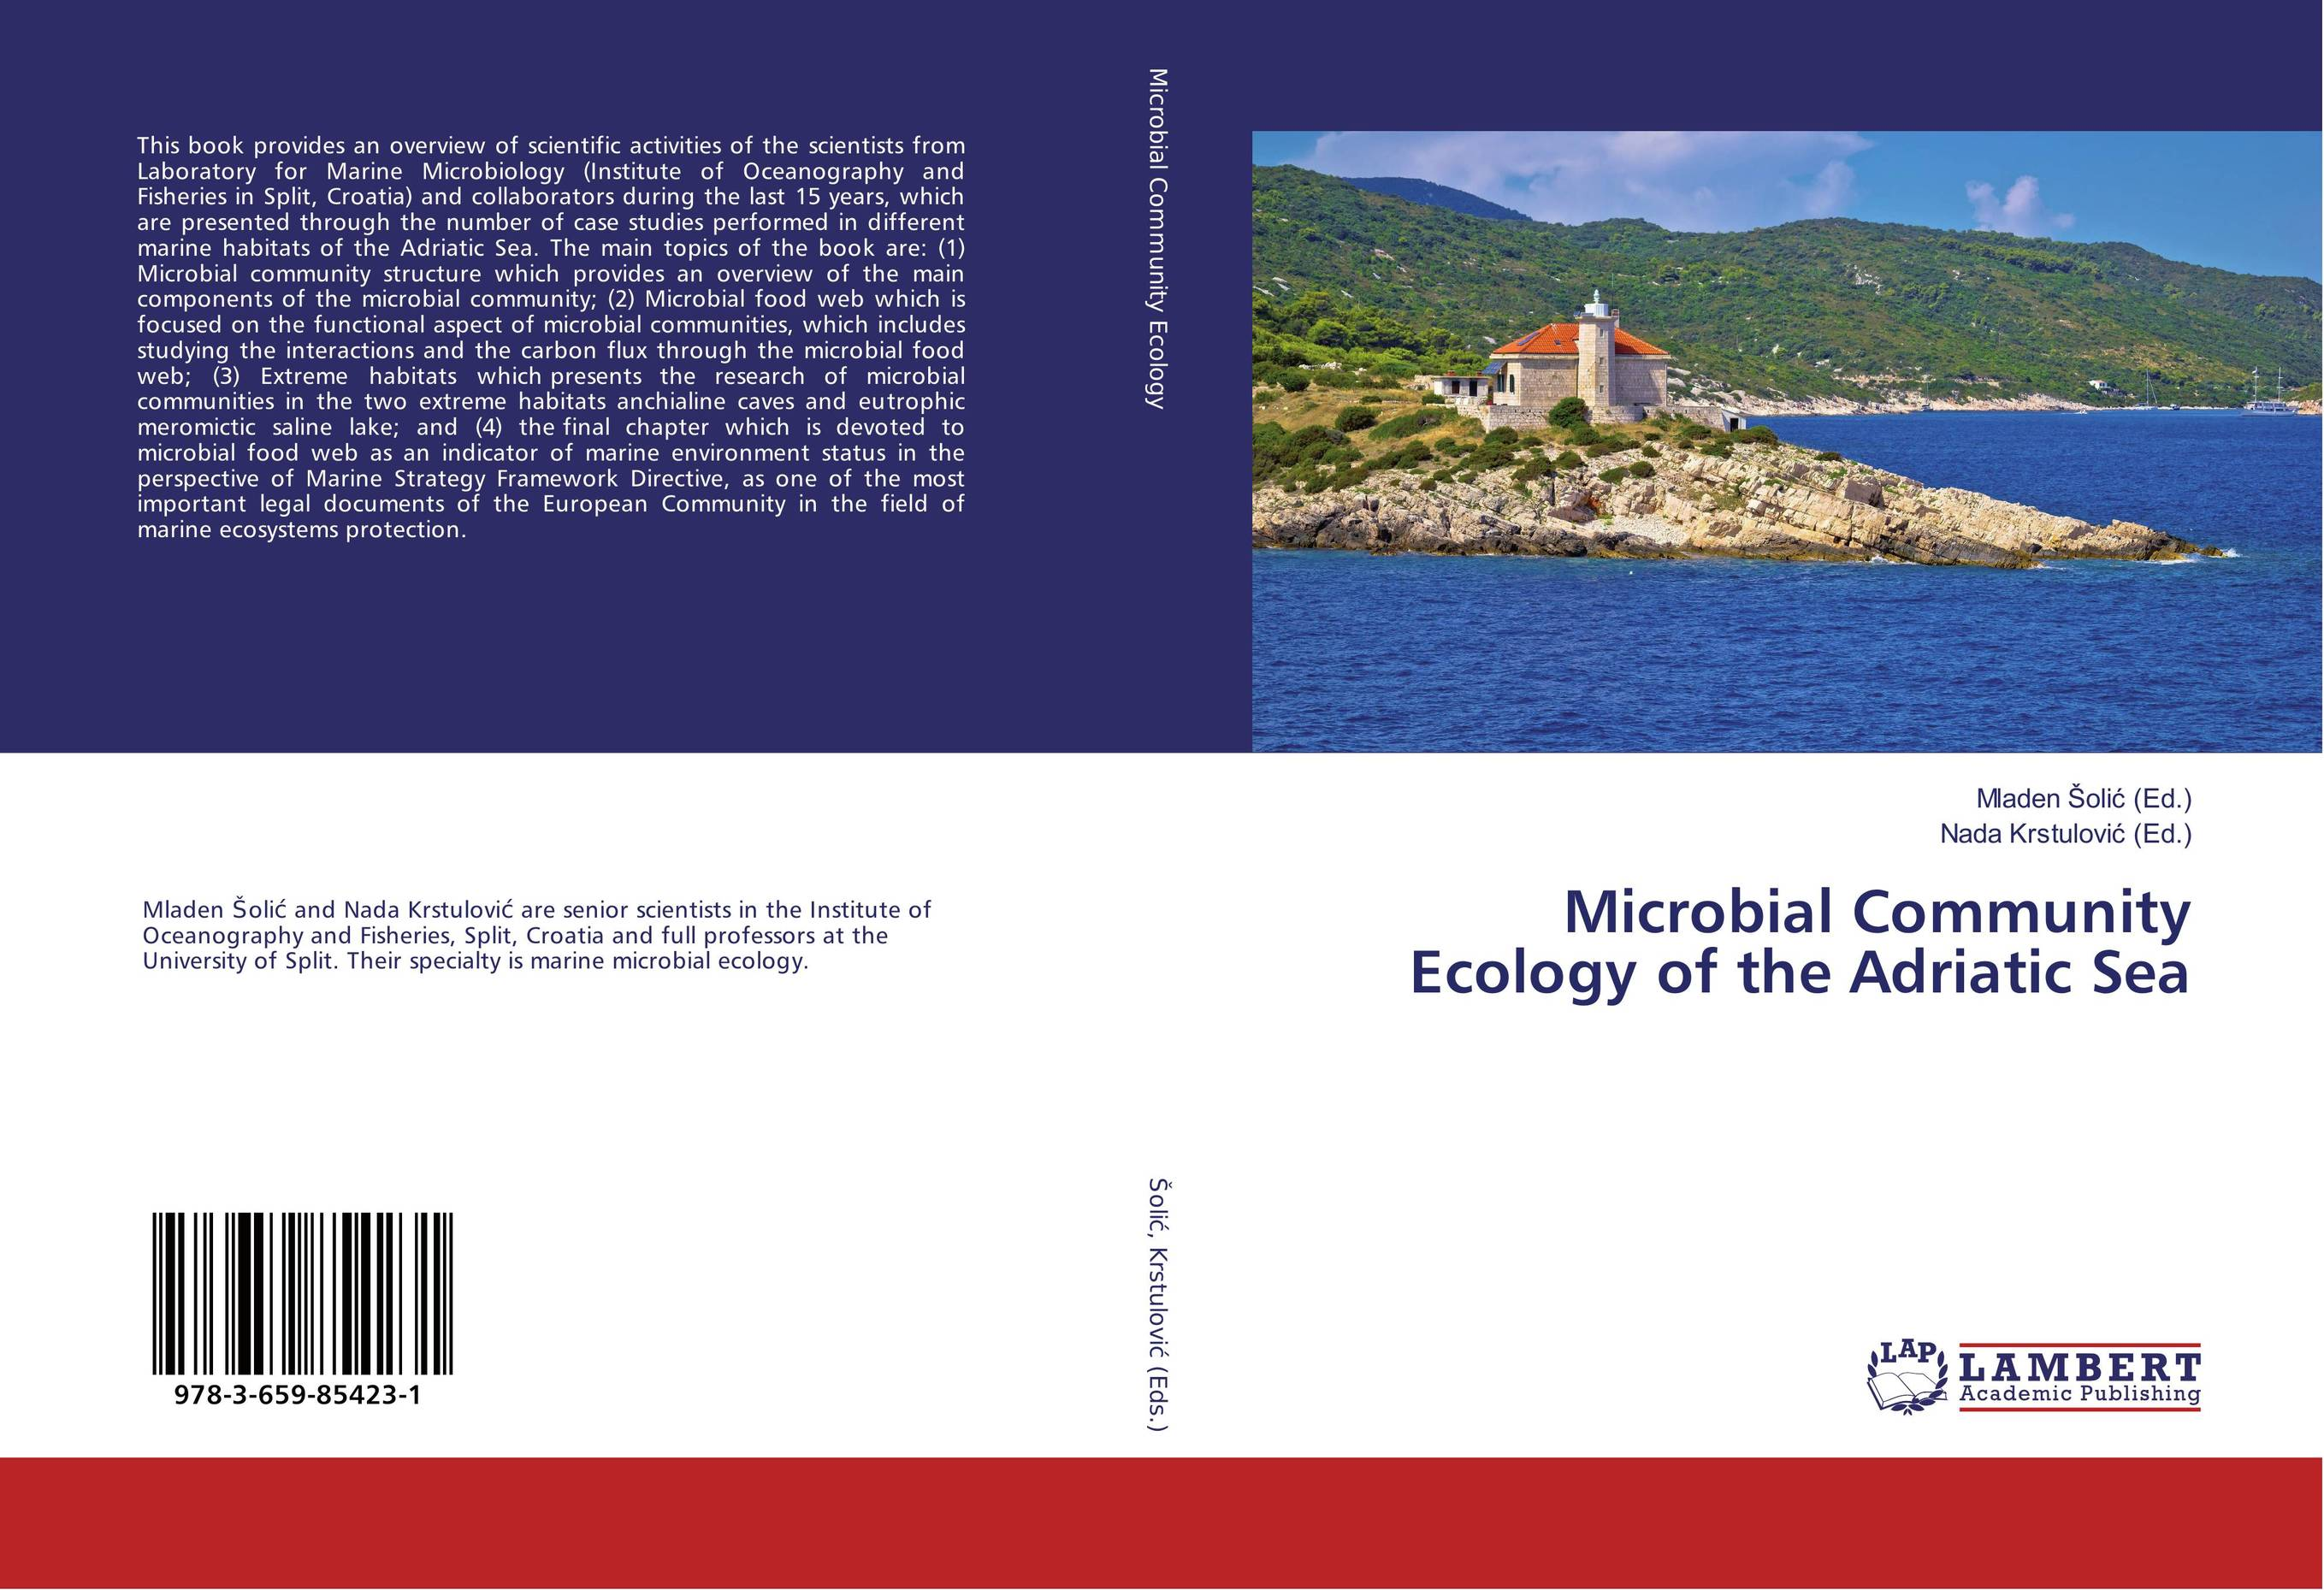 Microbial Community Ecology of the Adriatic Sea dinesh prasad n r kamini and m k gowthaman microbial tannases an overview